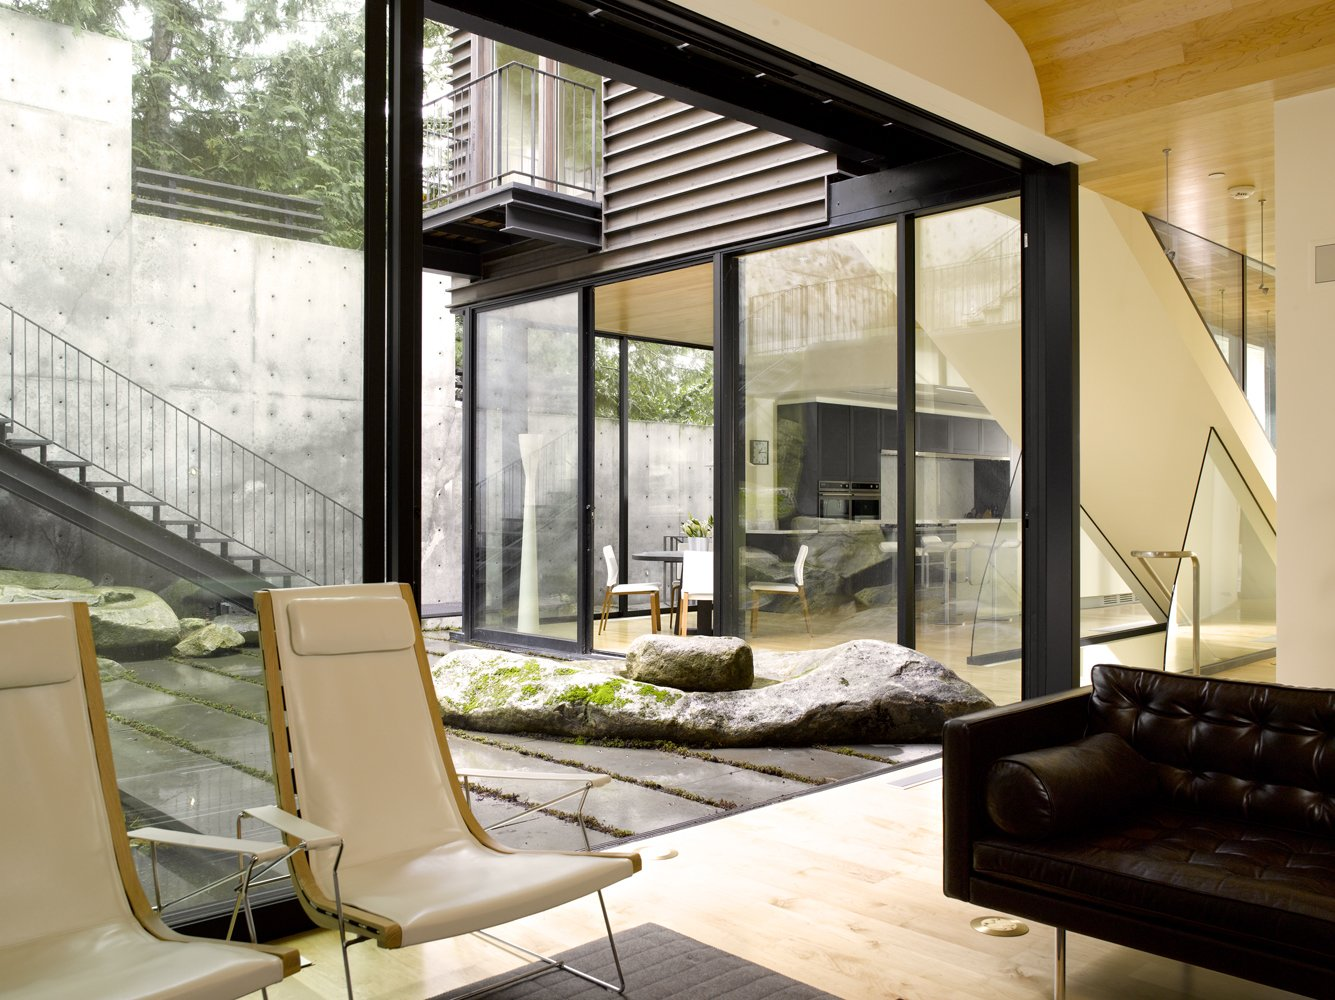 Living Room, Chair, Coffee Tables, Sofa, Light Hardwood Floor, and Ceiling Lighting  Courtyard House on a Steep Site by Robert Hutchison Architecture